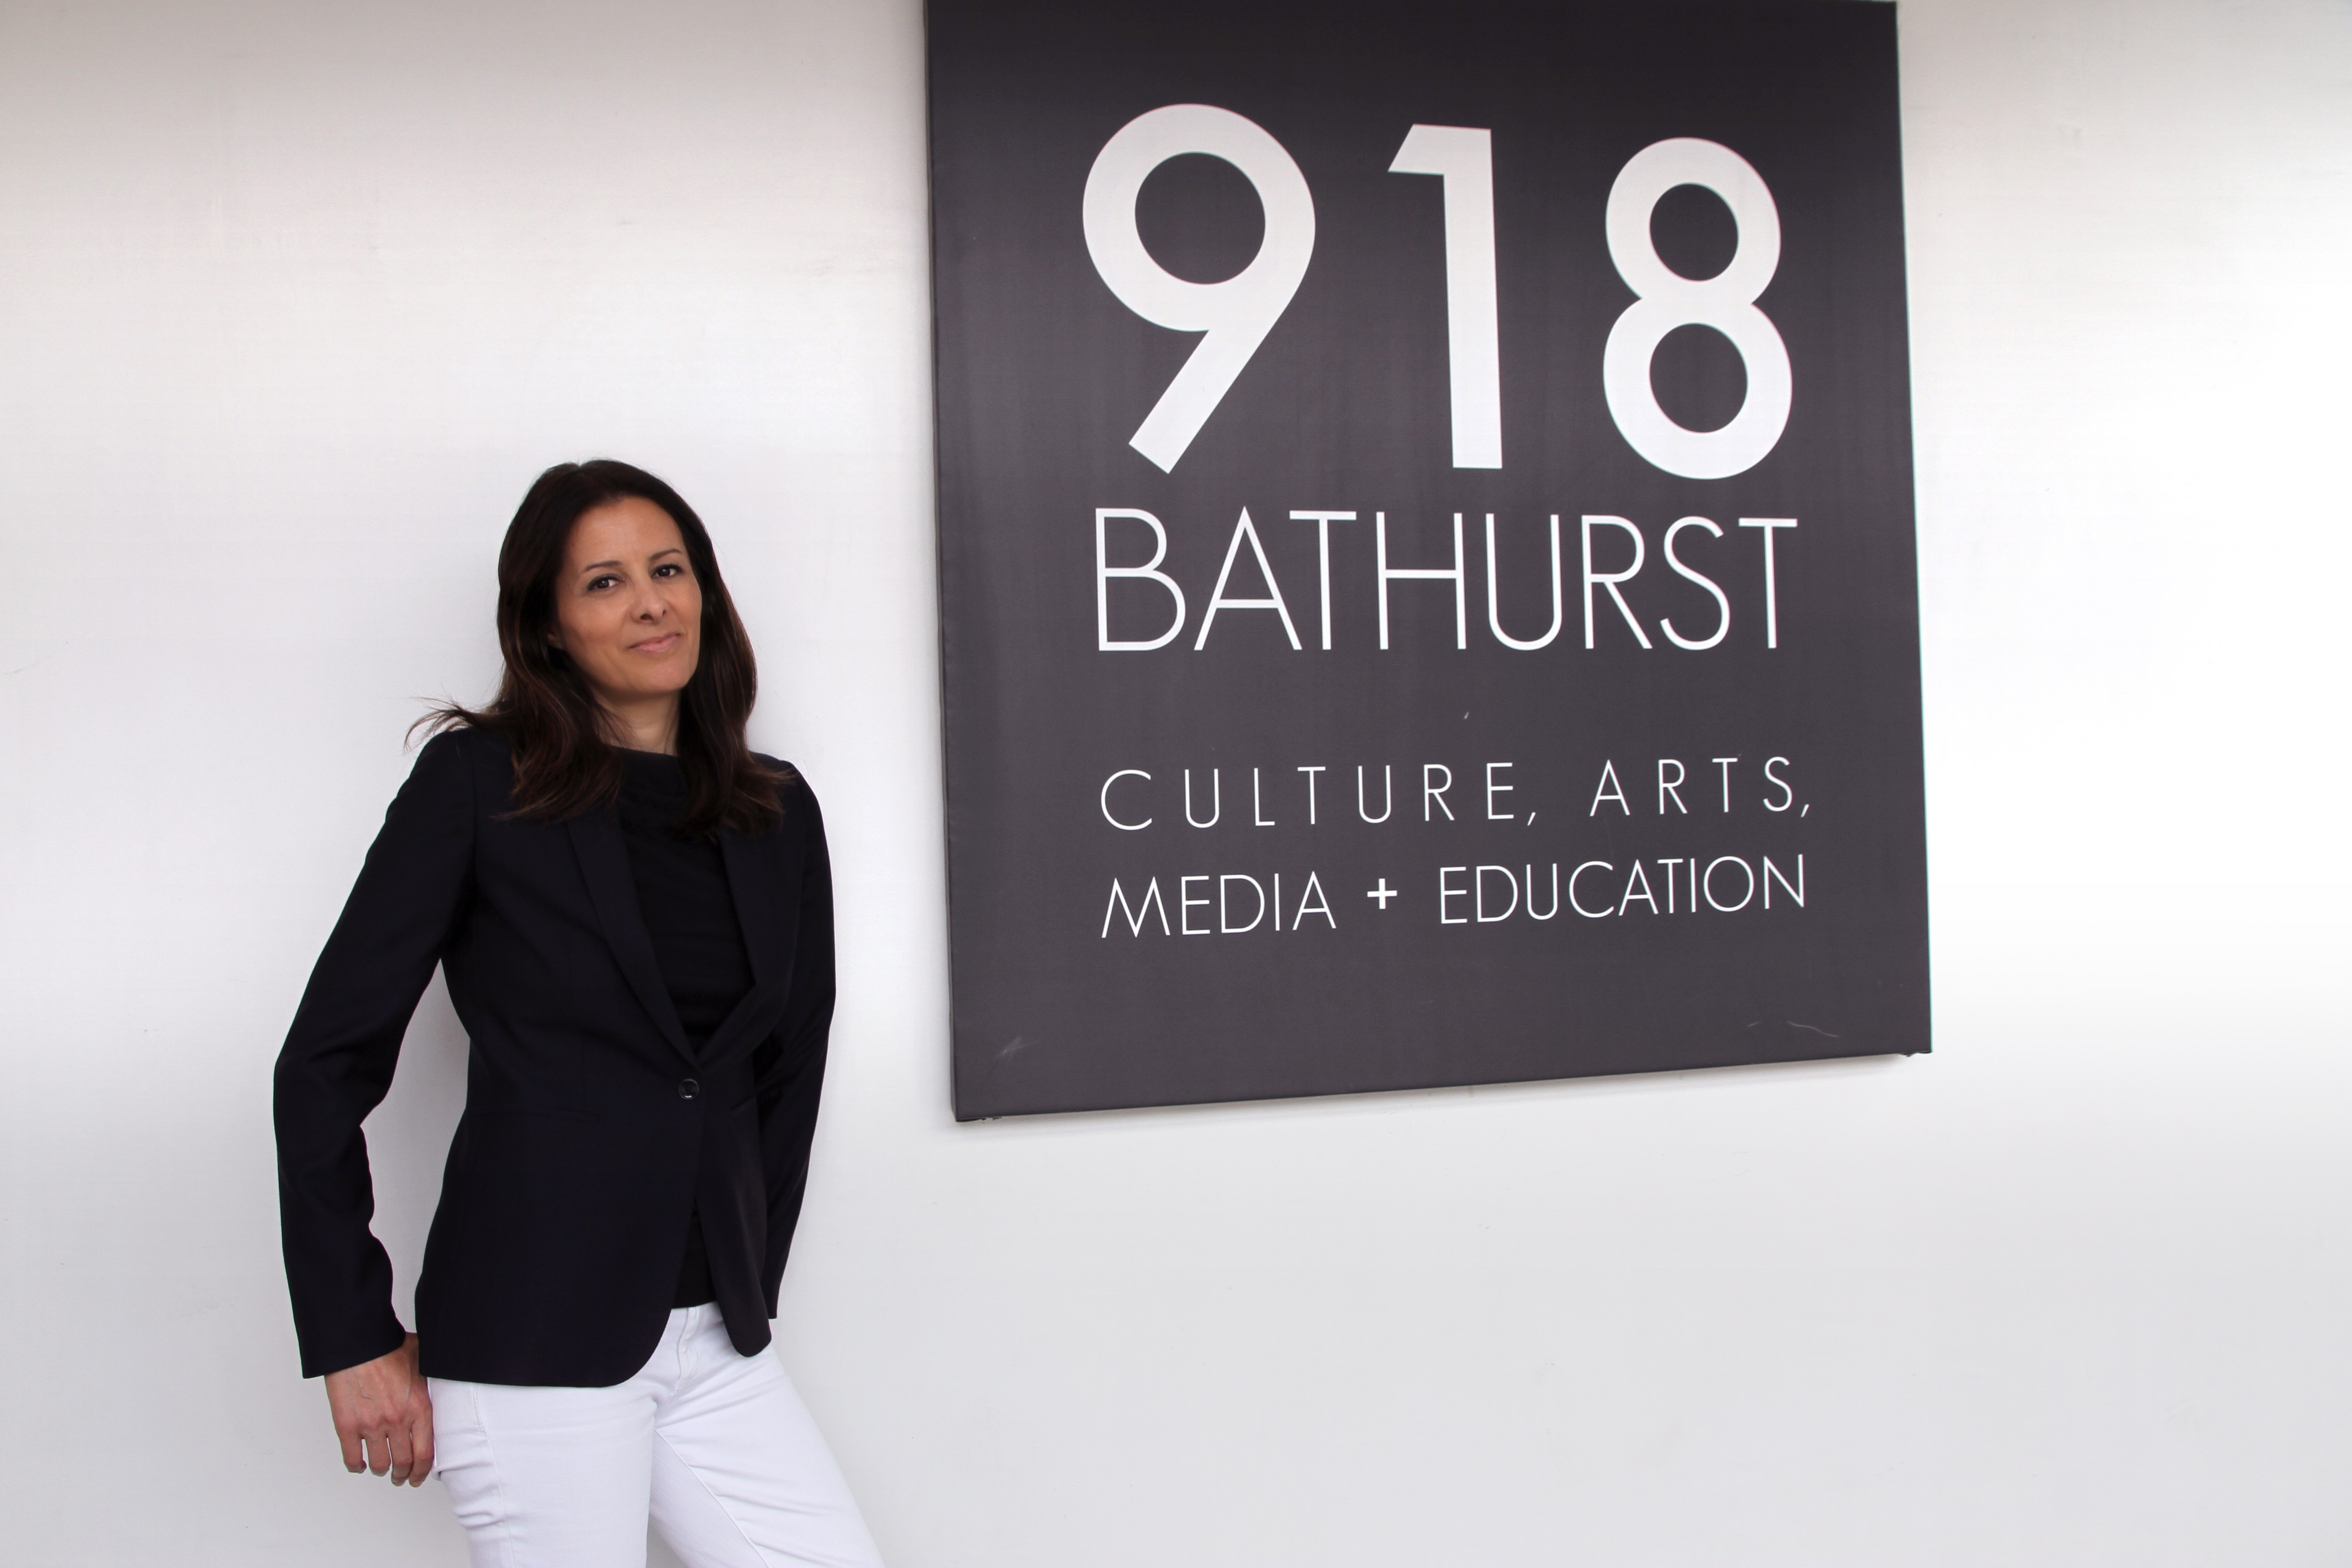 Daniela Nardi Appointed new Executive and Artistic Director  for 918 Bathurst